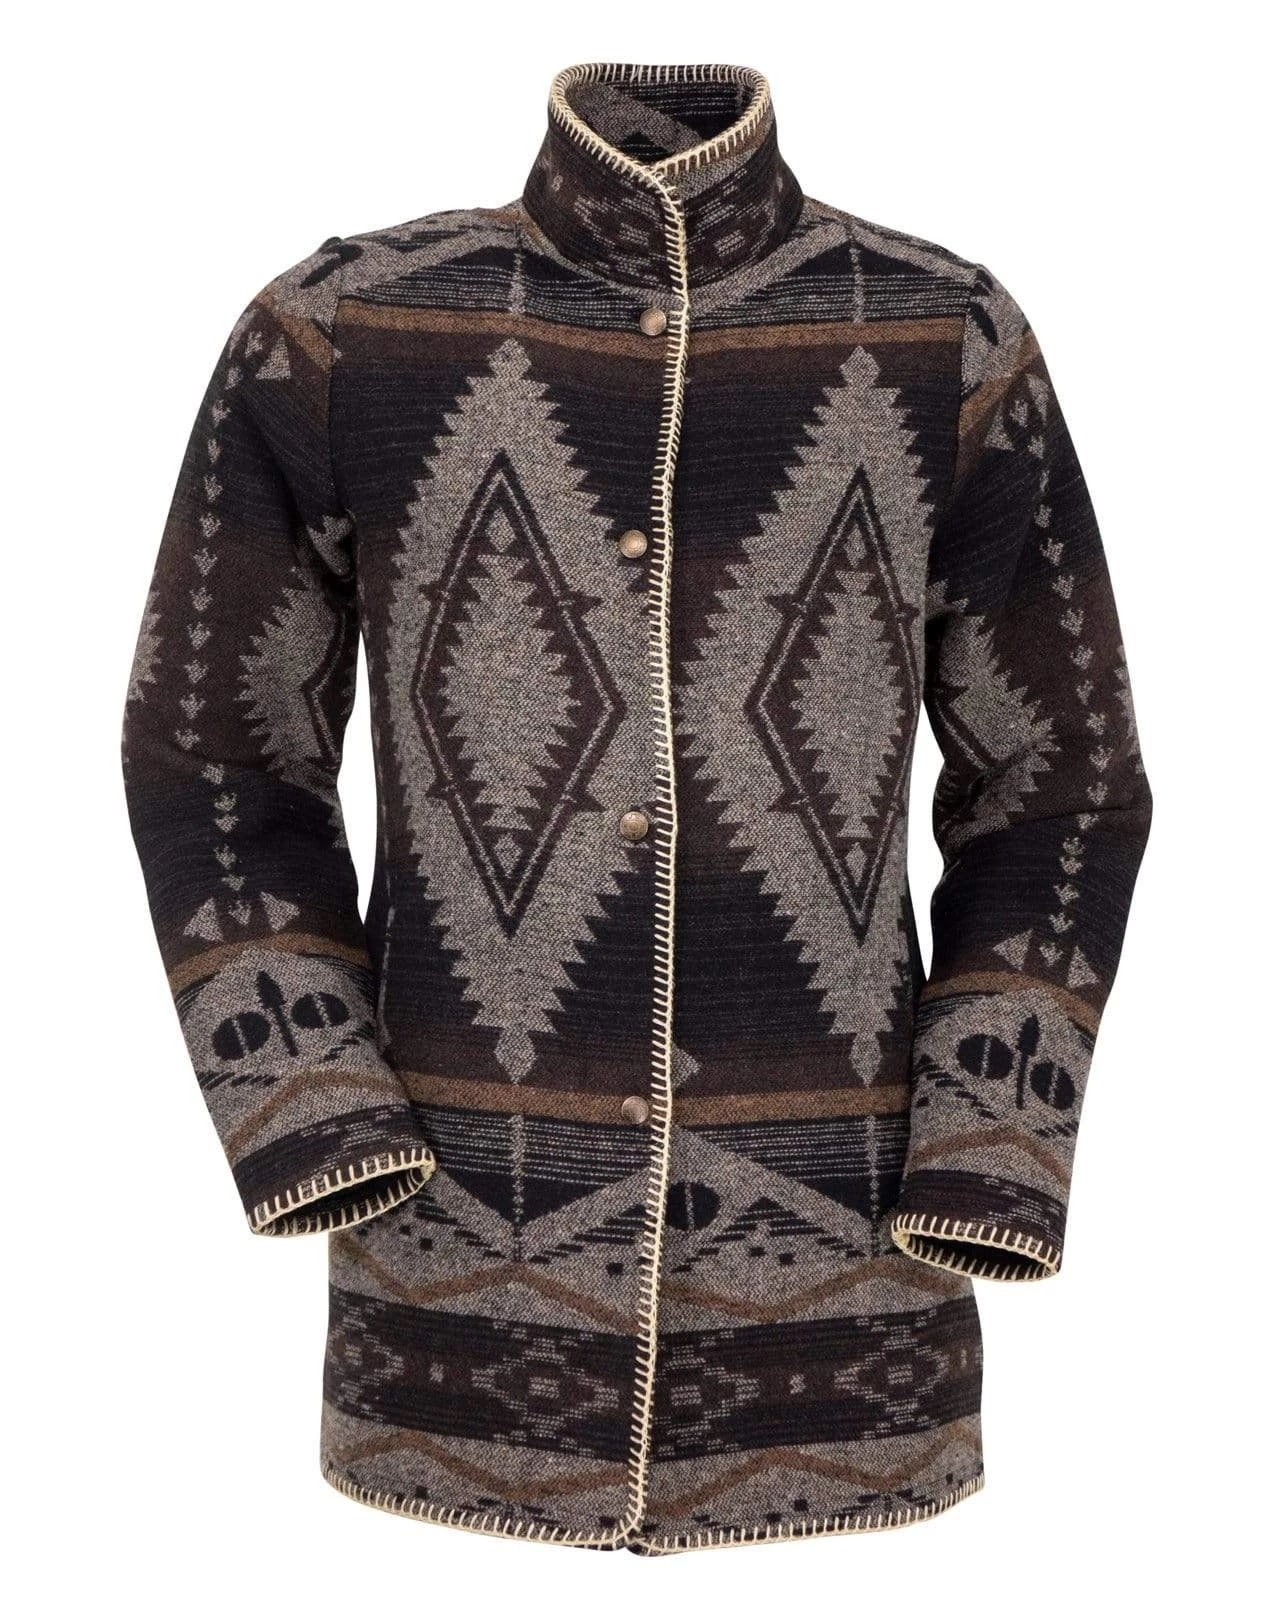 Outback Women's Moree Jacket